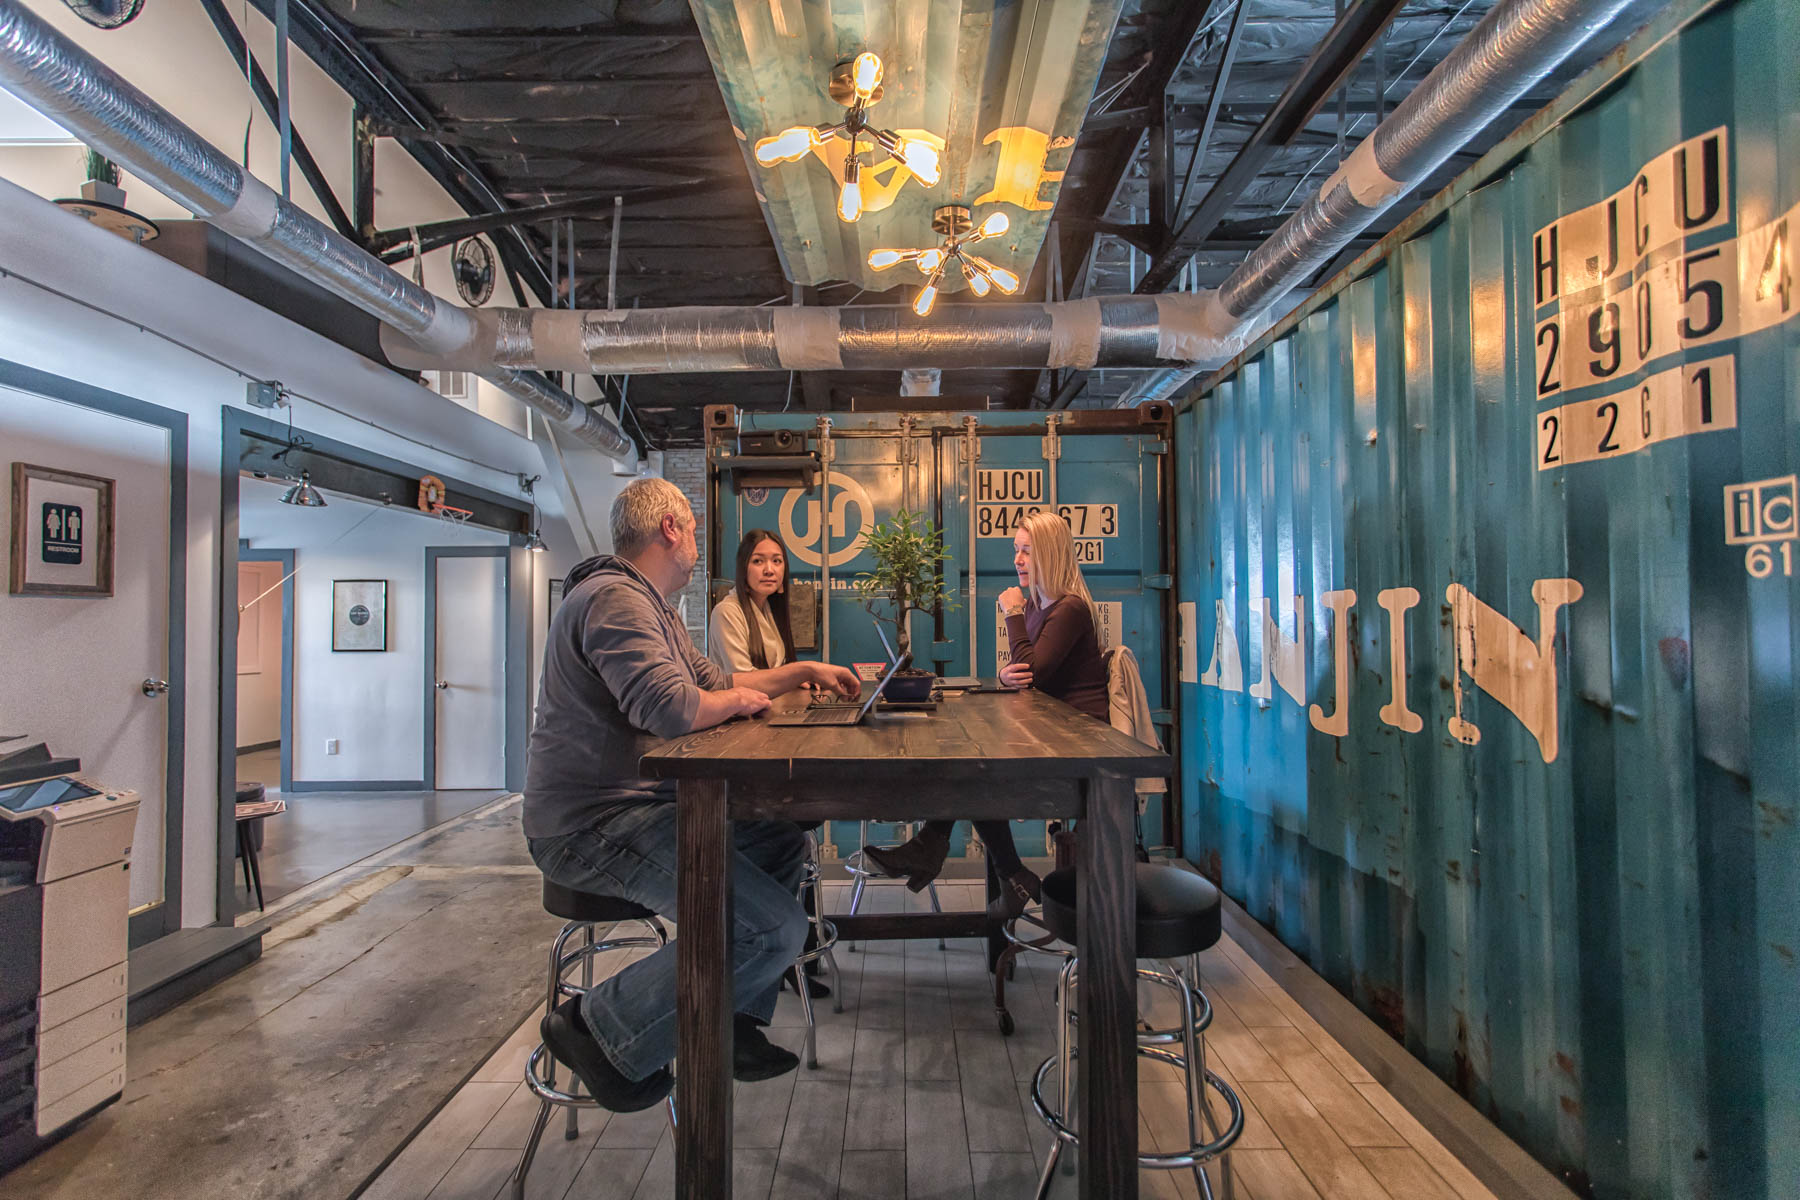 Hello, grab a seat. - We provide a variety of affordable workspace solutions, from General Memberships and as needed Hot Desks to personal Dedicated Desks and fully-furnished Private Offices. All of our plans include month-to-month lease terms, with no long-term contracts.